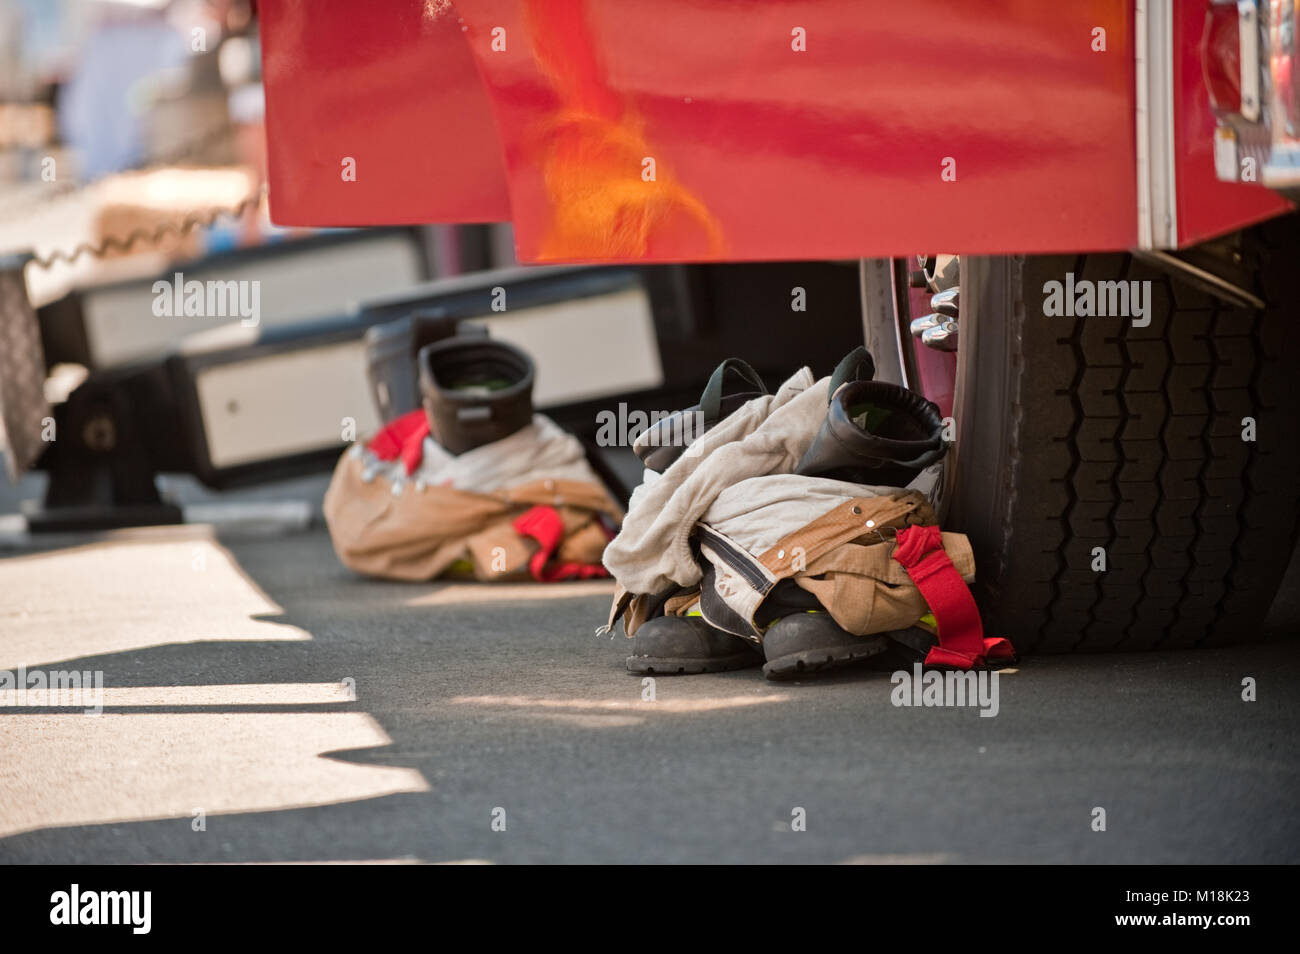 Close up view of pairs of fire boots and fire pants outside a fire truck at a public event - Stock Image